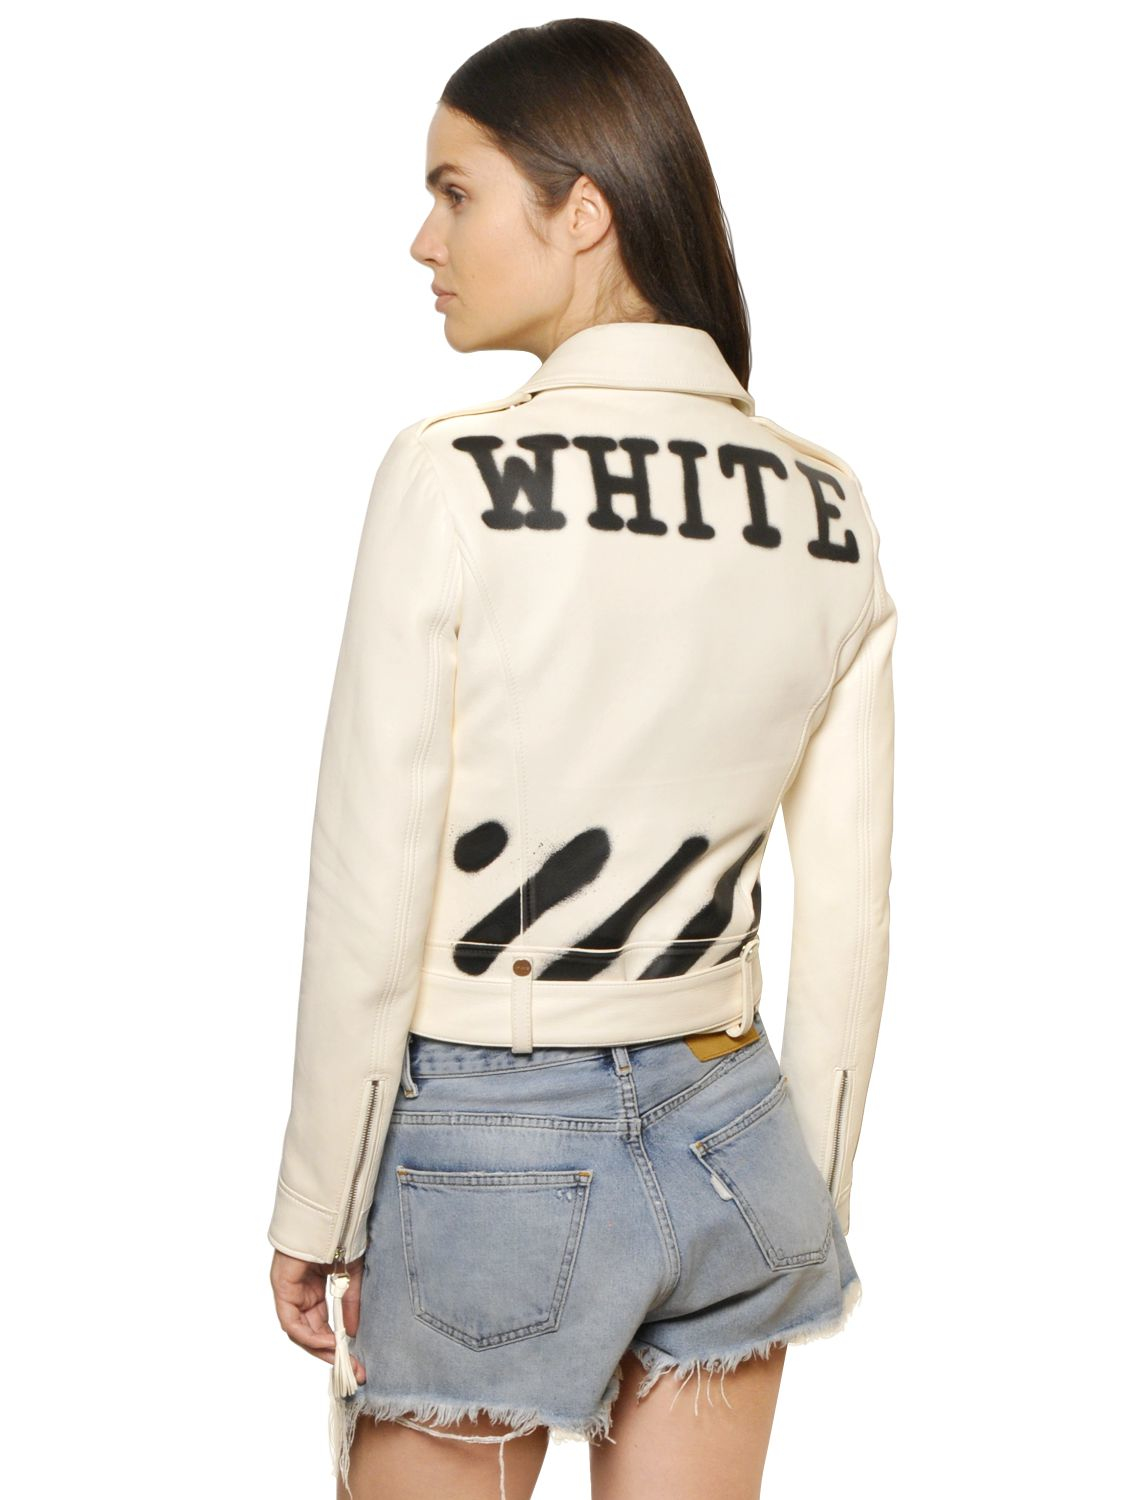 Off White Spring Summer 2017 Women S Collection: Off-White C/O Virgil Abloh Spray Paint Print Smooth